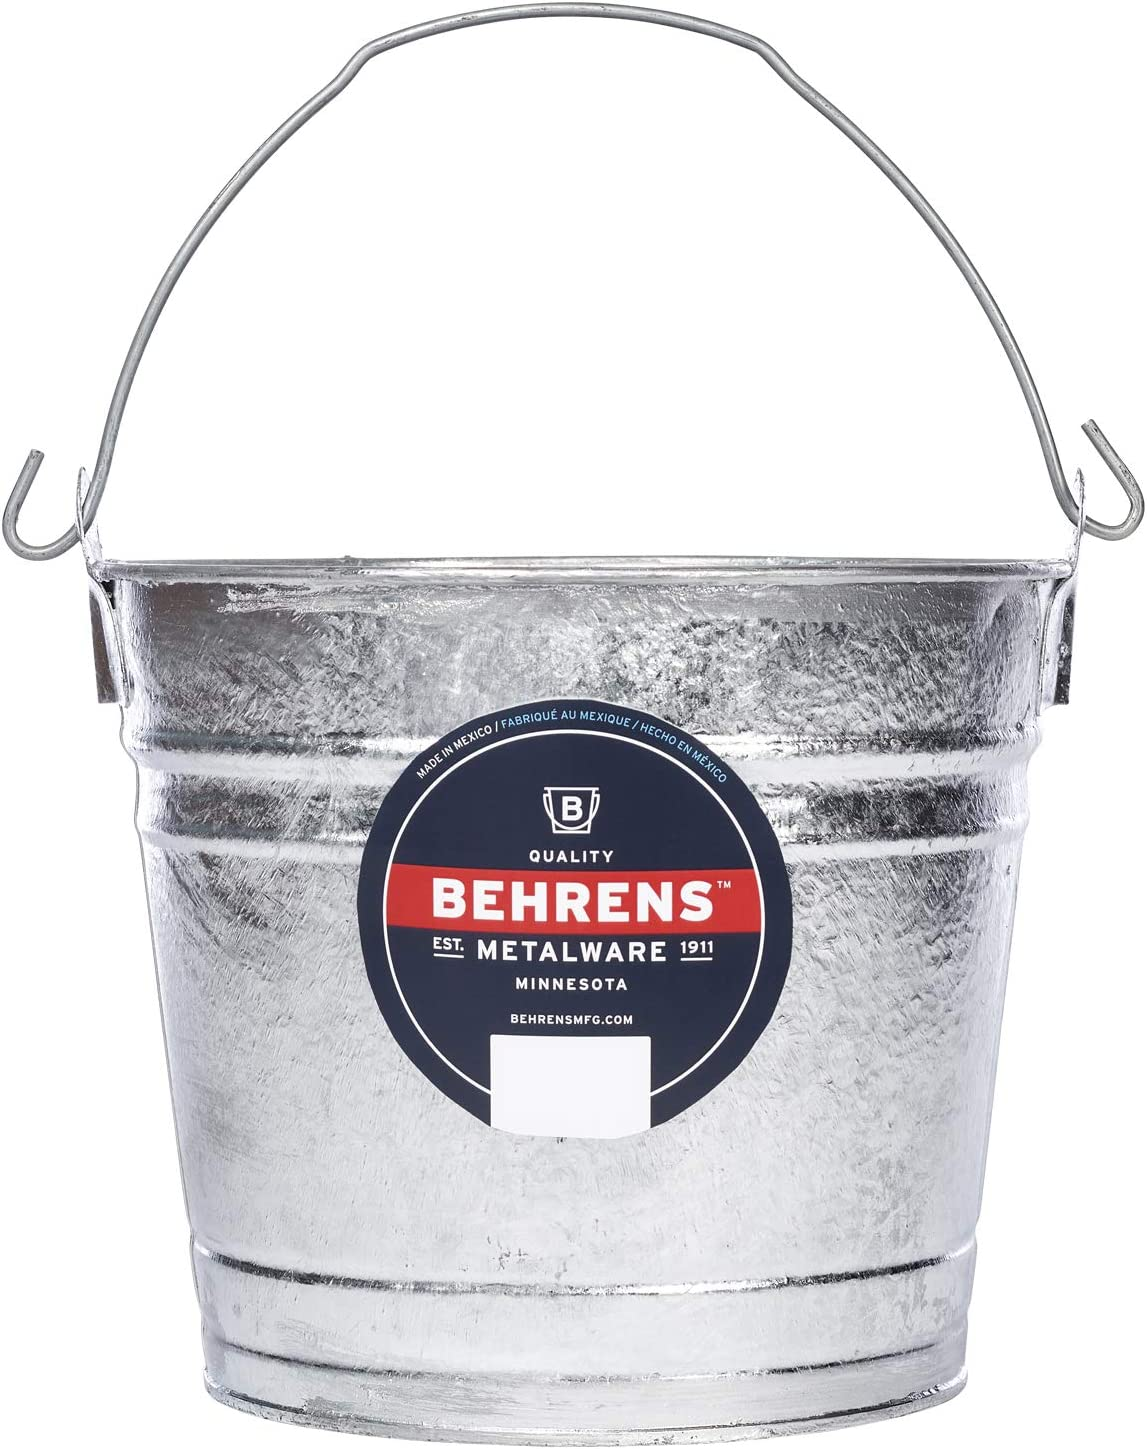 Behrens Hot-Dipped Galvanized Steel Utility Pail 8-Quart